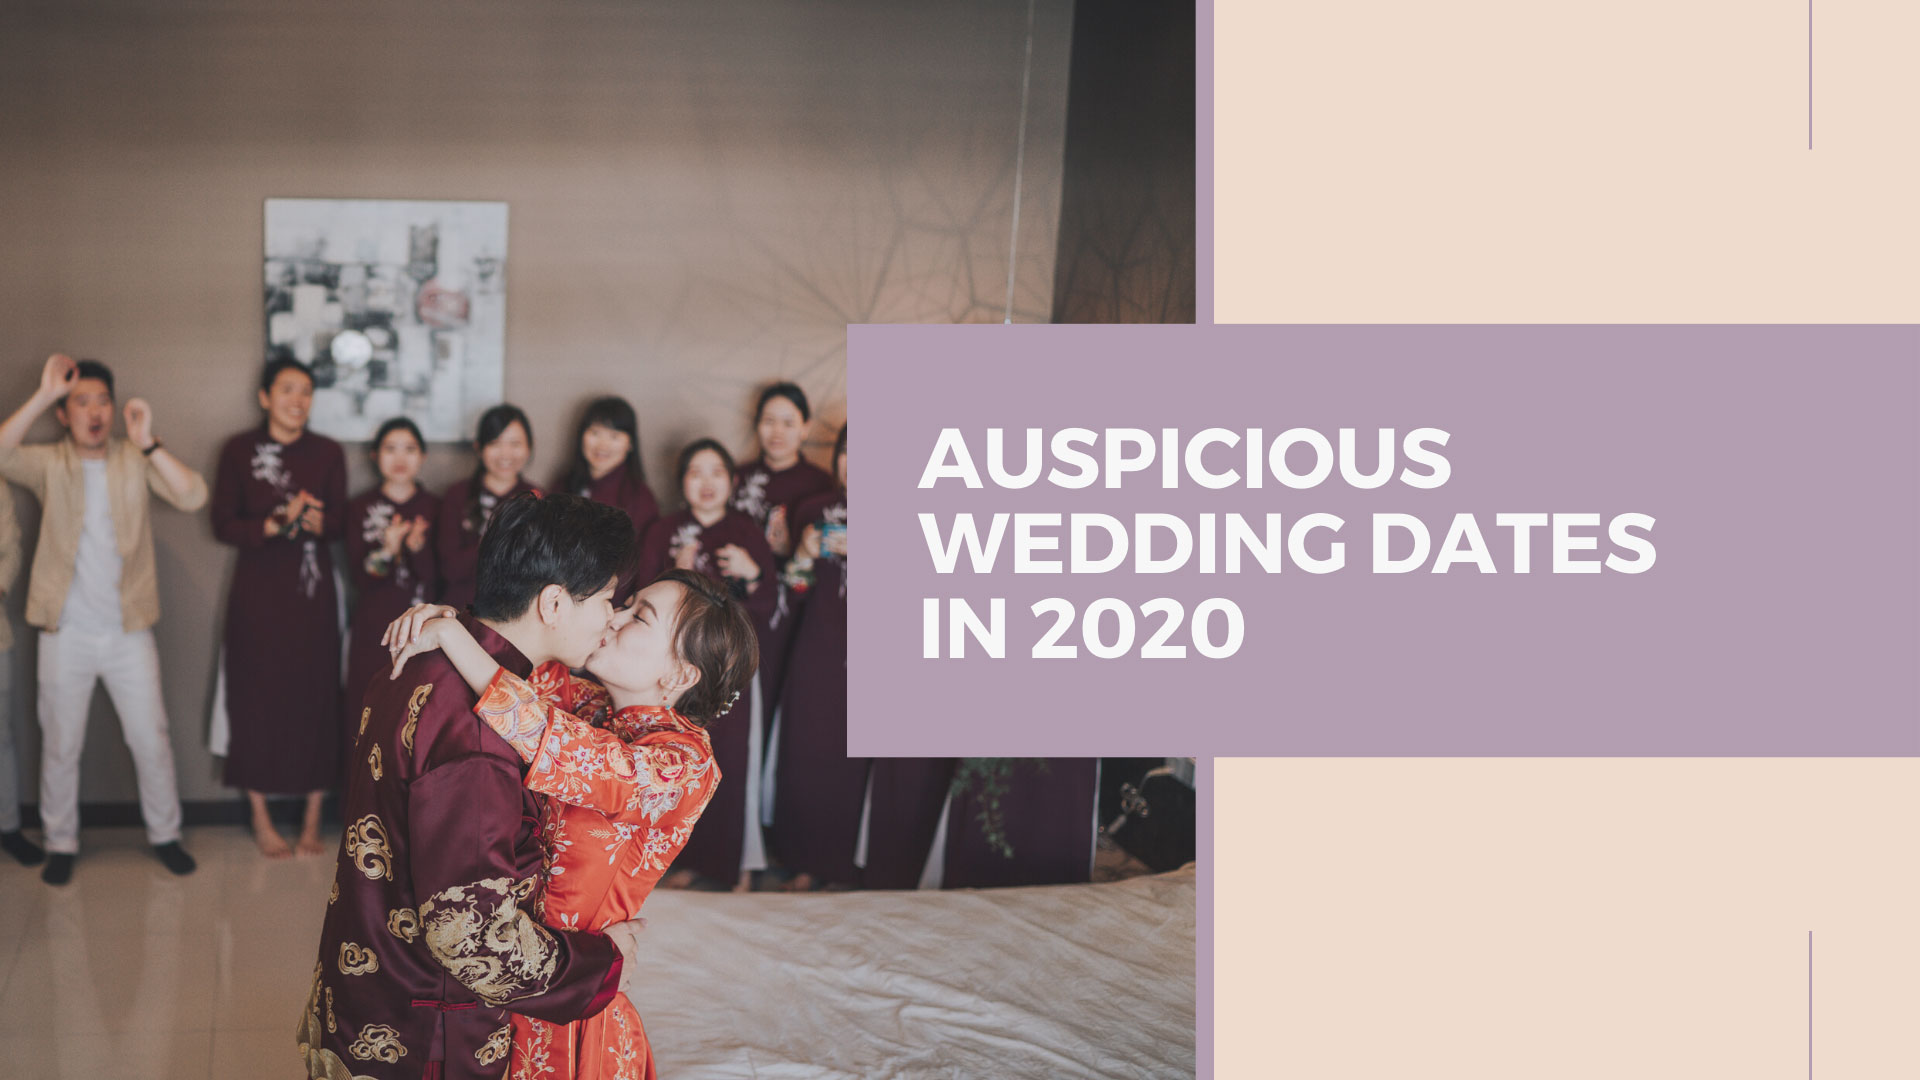 Auspicious wedding dates in 2020